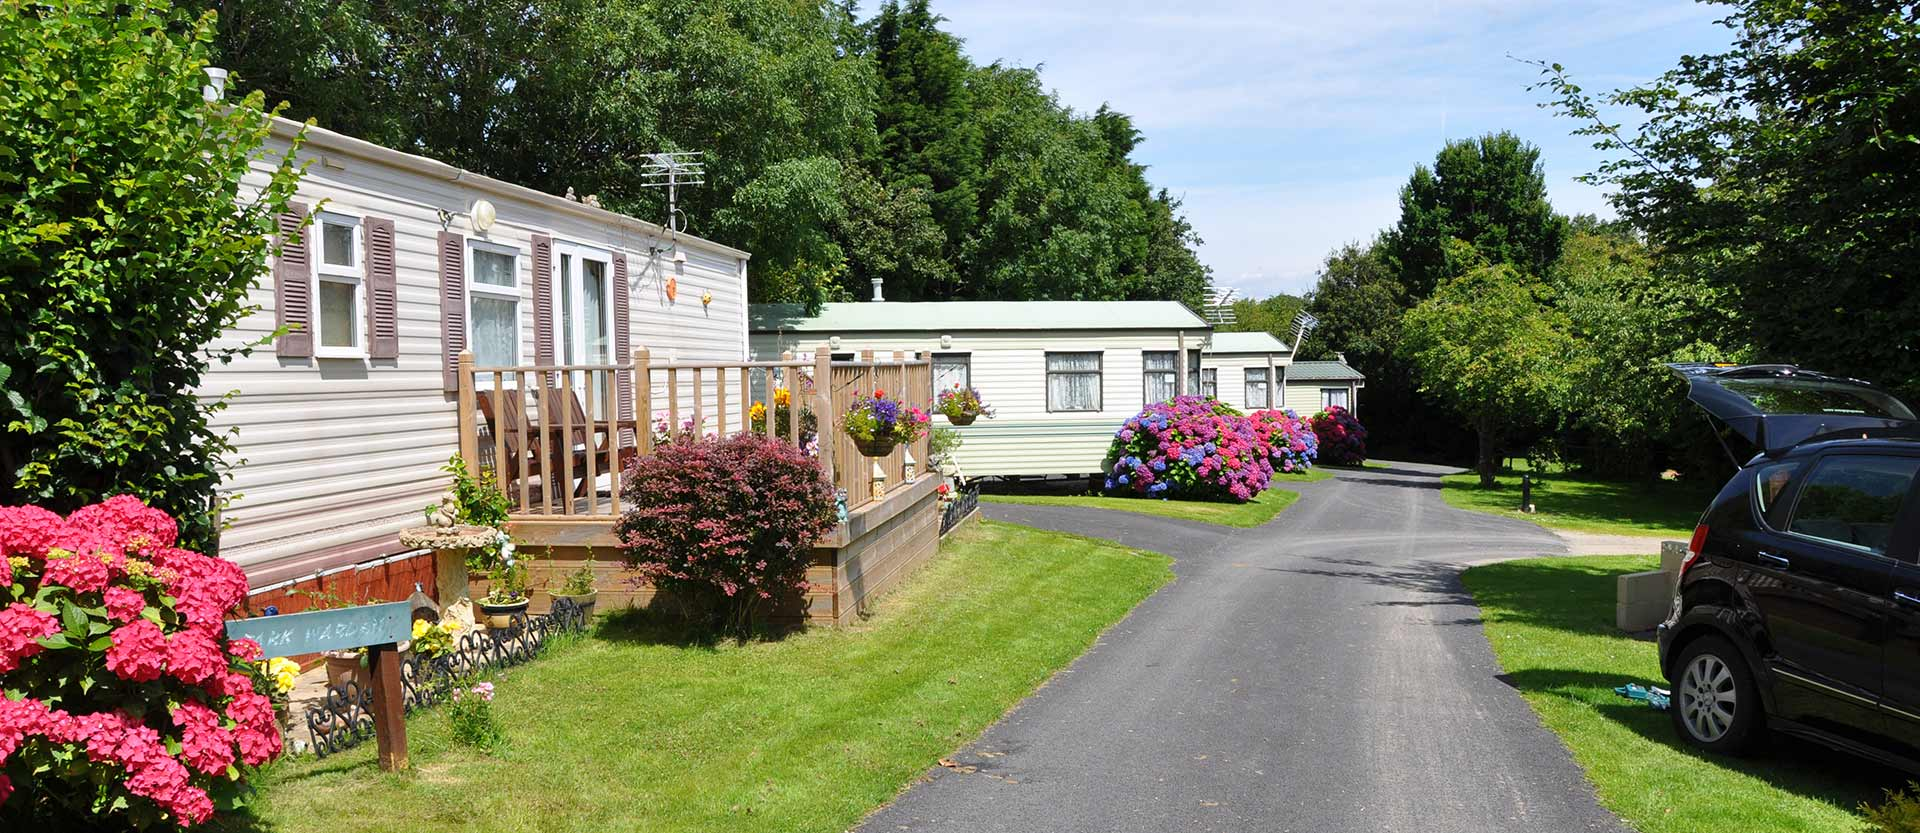 Holiday Homes at Trethiggey